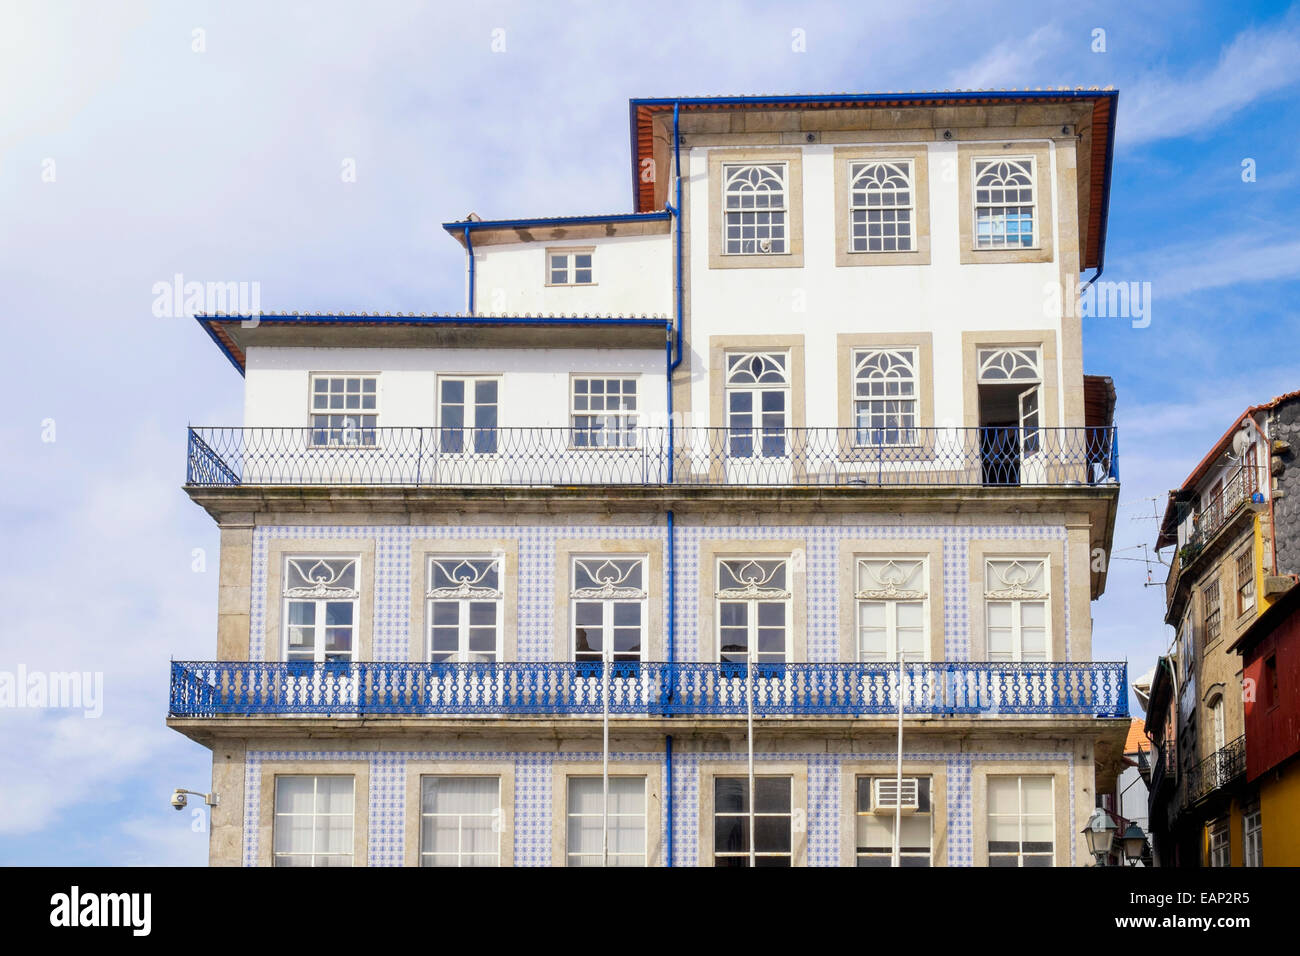 Old building in the Ribeira district of Oporto Portugal Europe - Stock Image